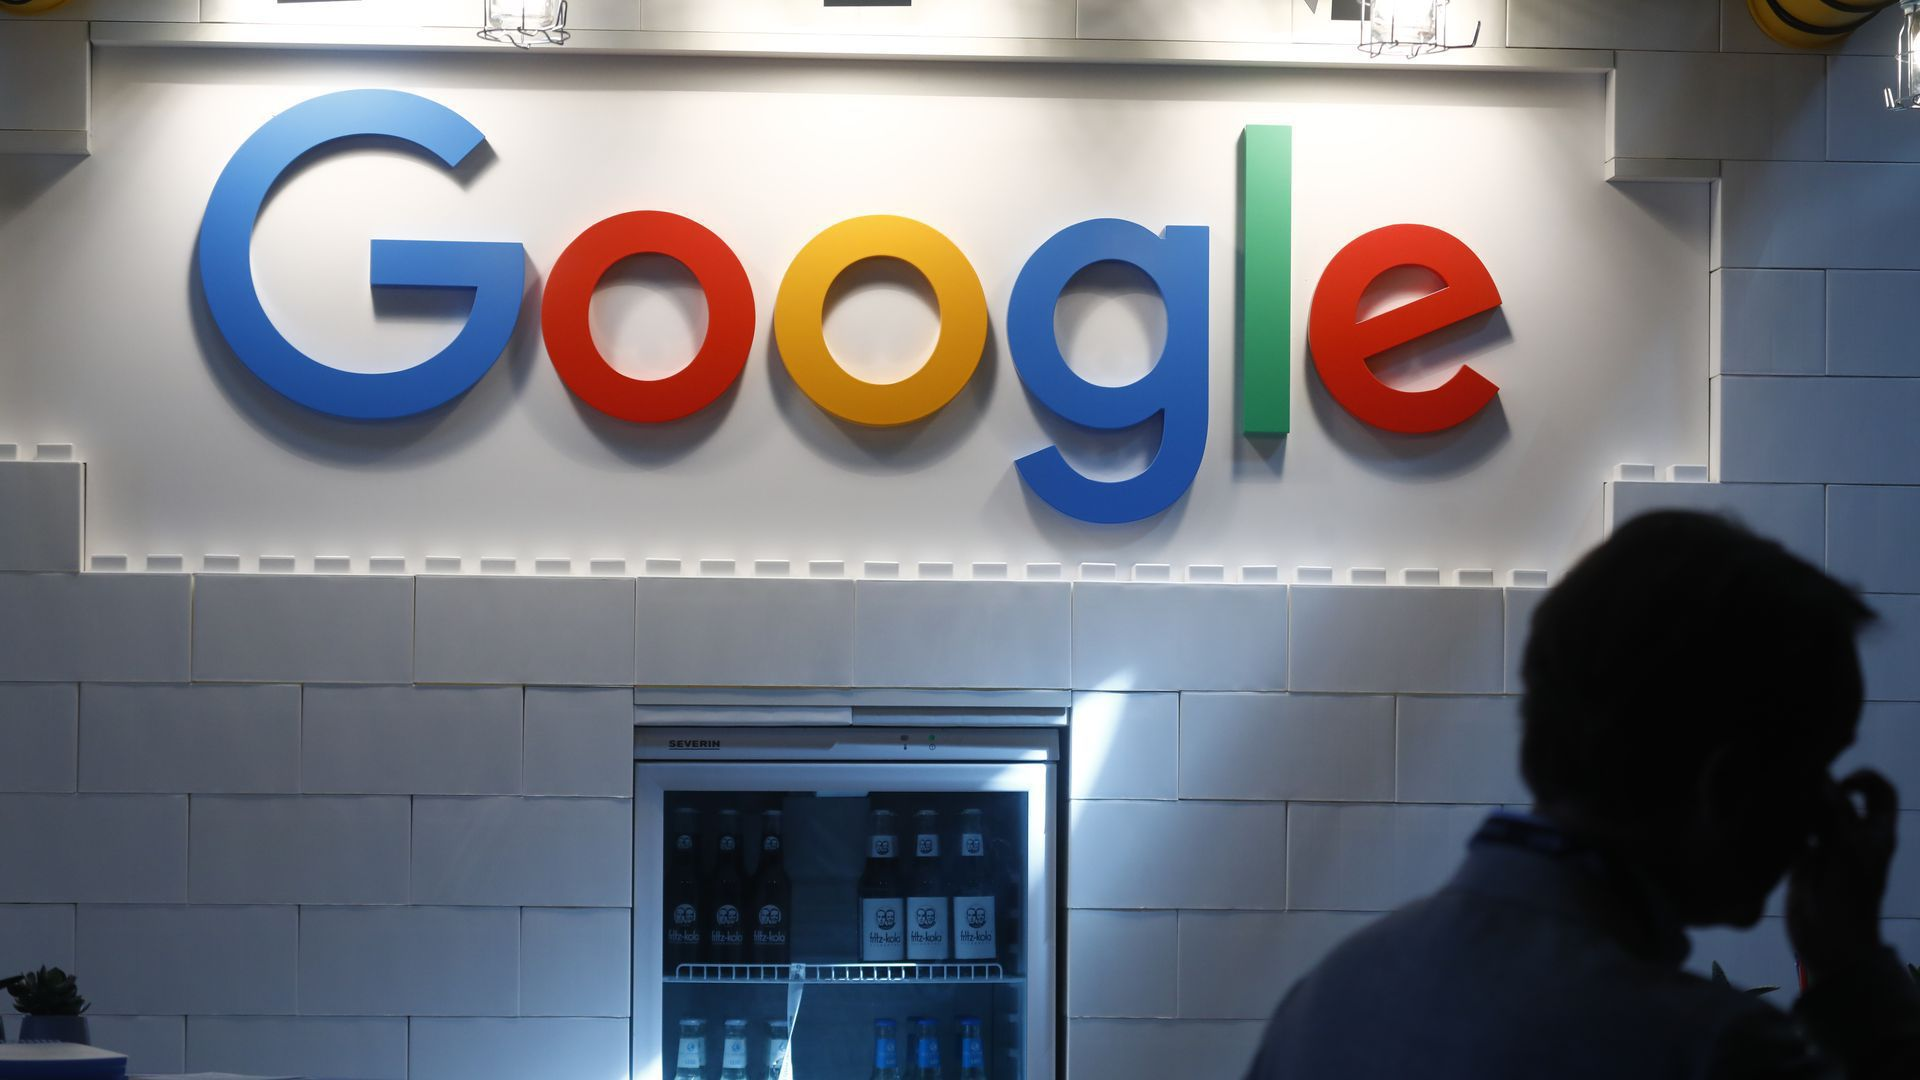 Photo of the Google brand sign